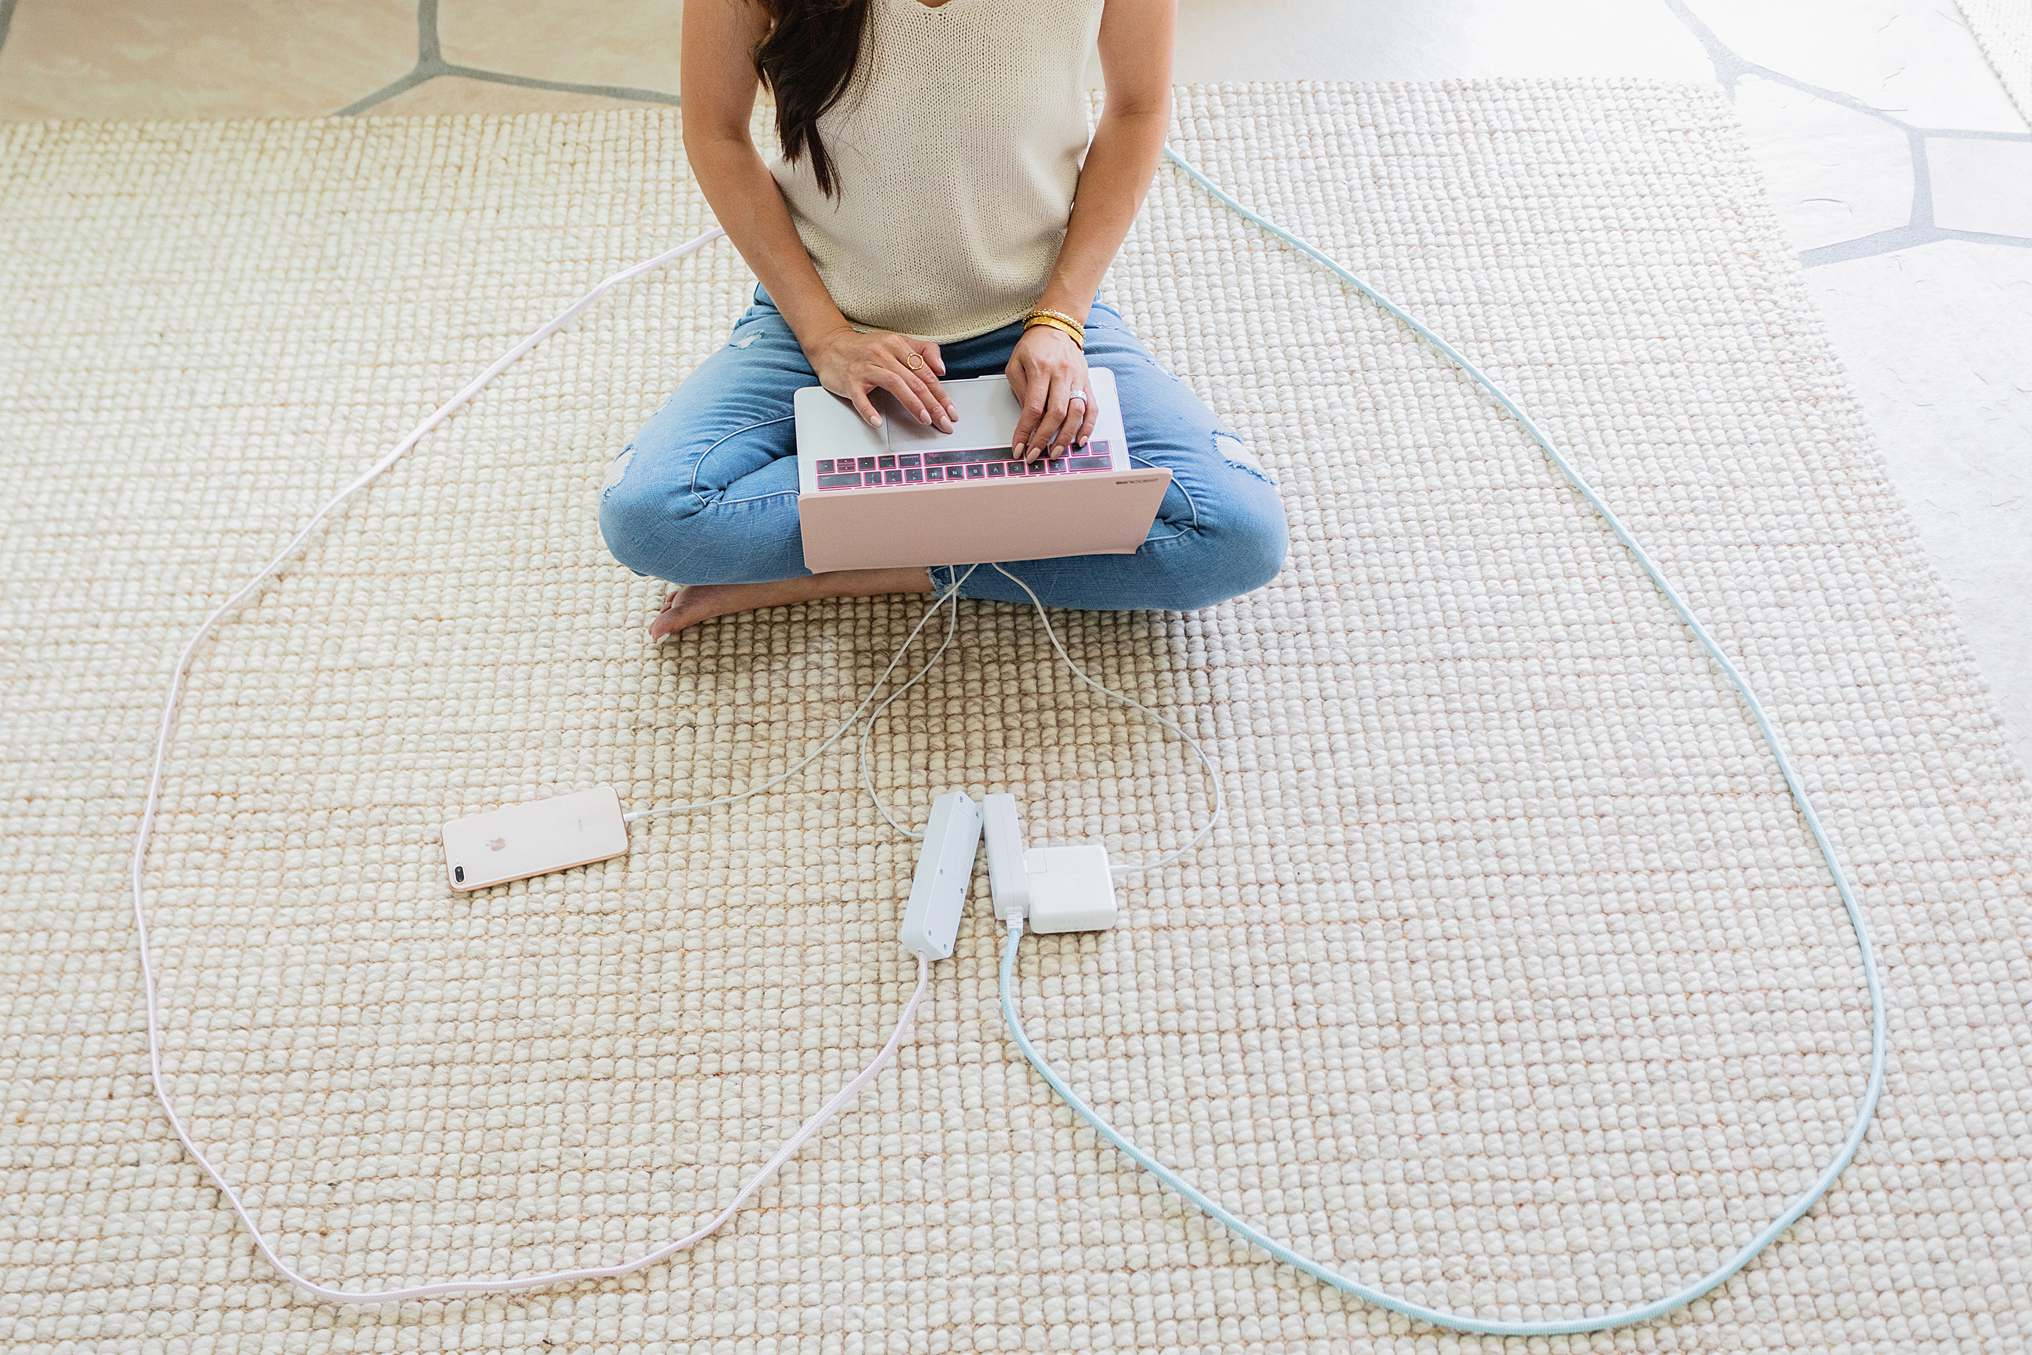 extension cords for your home, stylish and functional